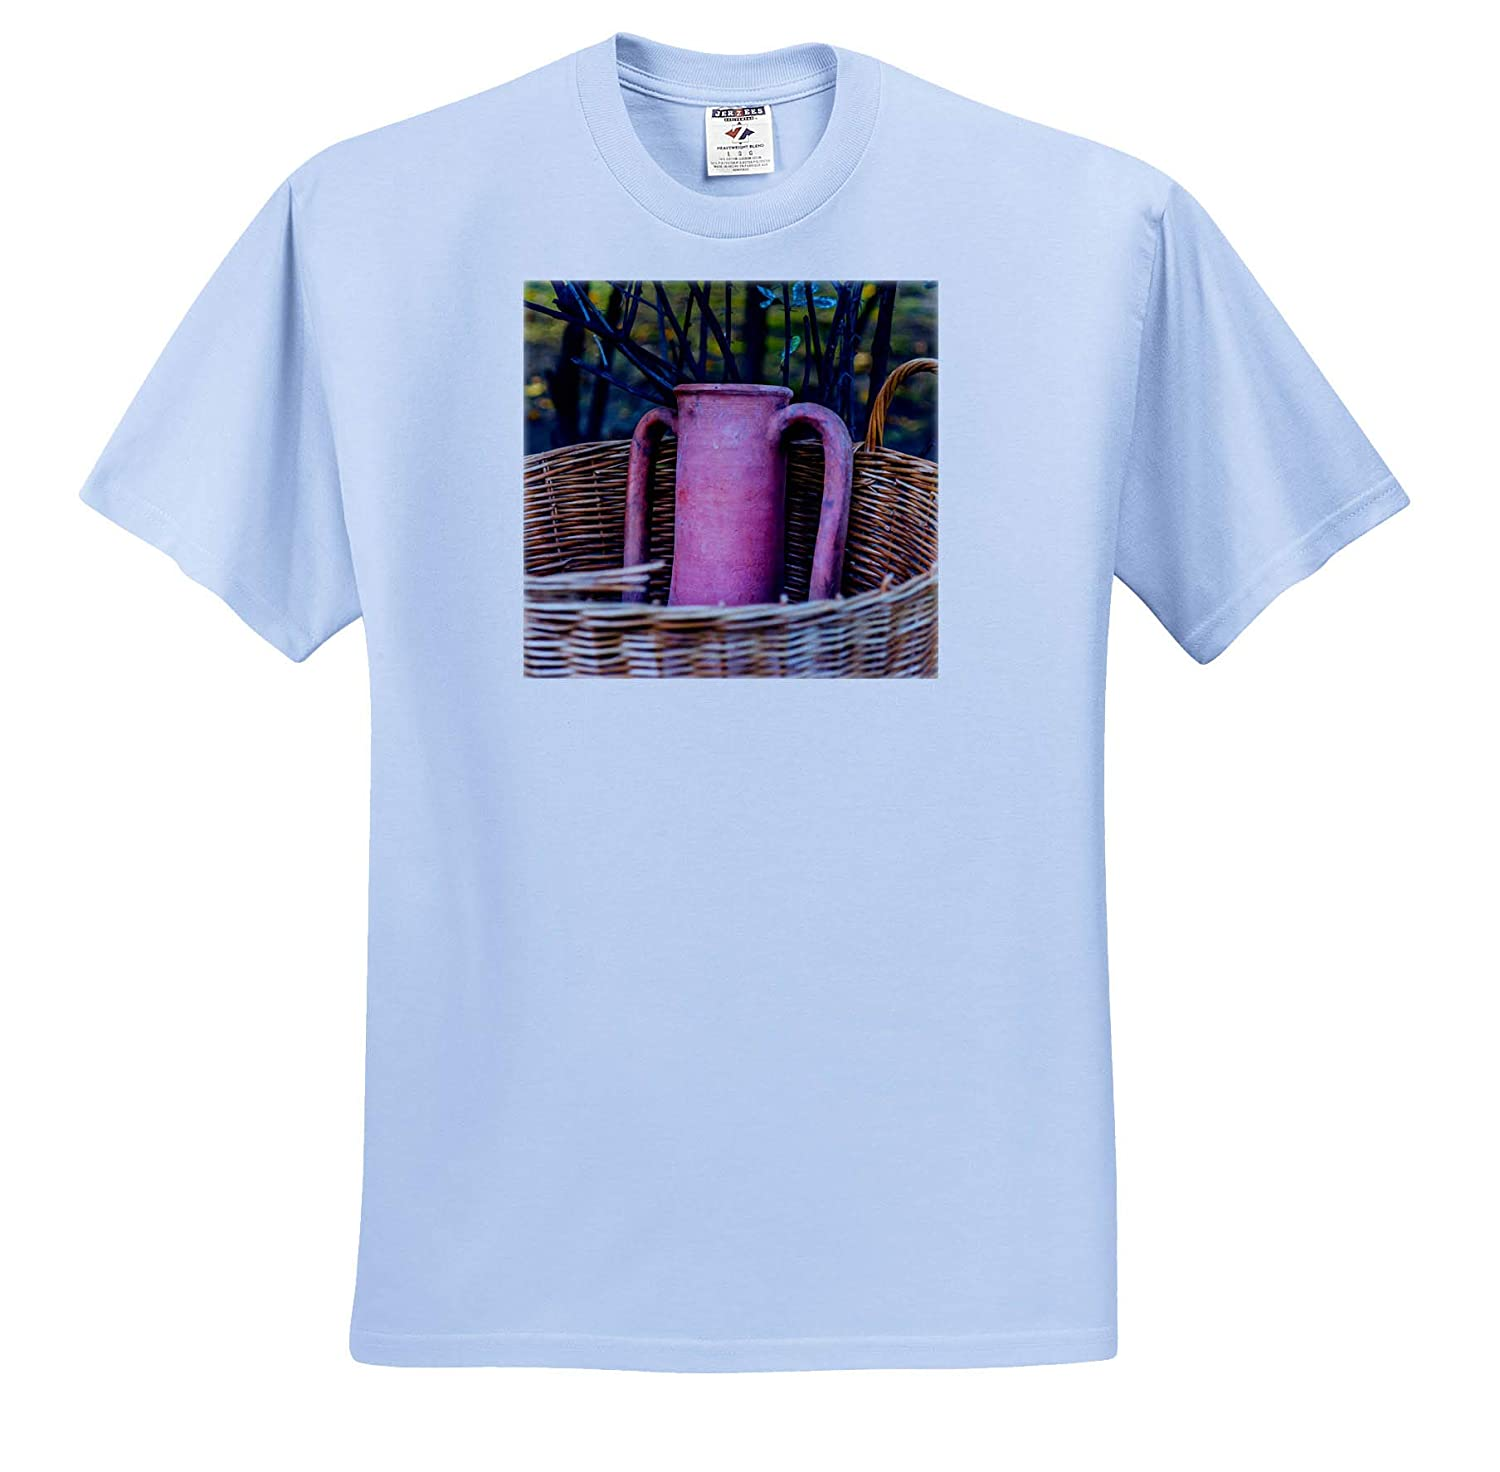 Image of an Ancient Amphora Vessel in a Wicker Basket 3dRose Alexis Photography T-Shirts Objects Amphora